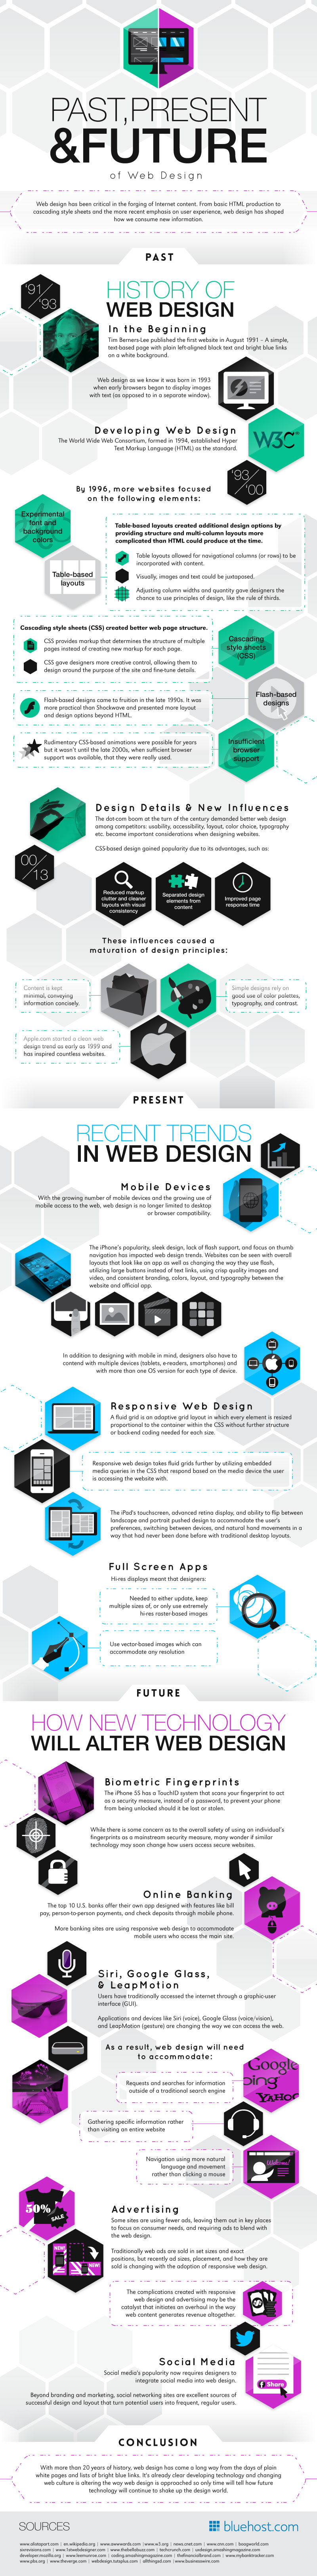 past-present-future-of-web-design